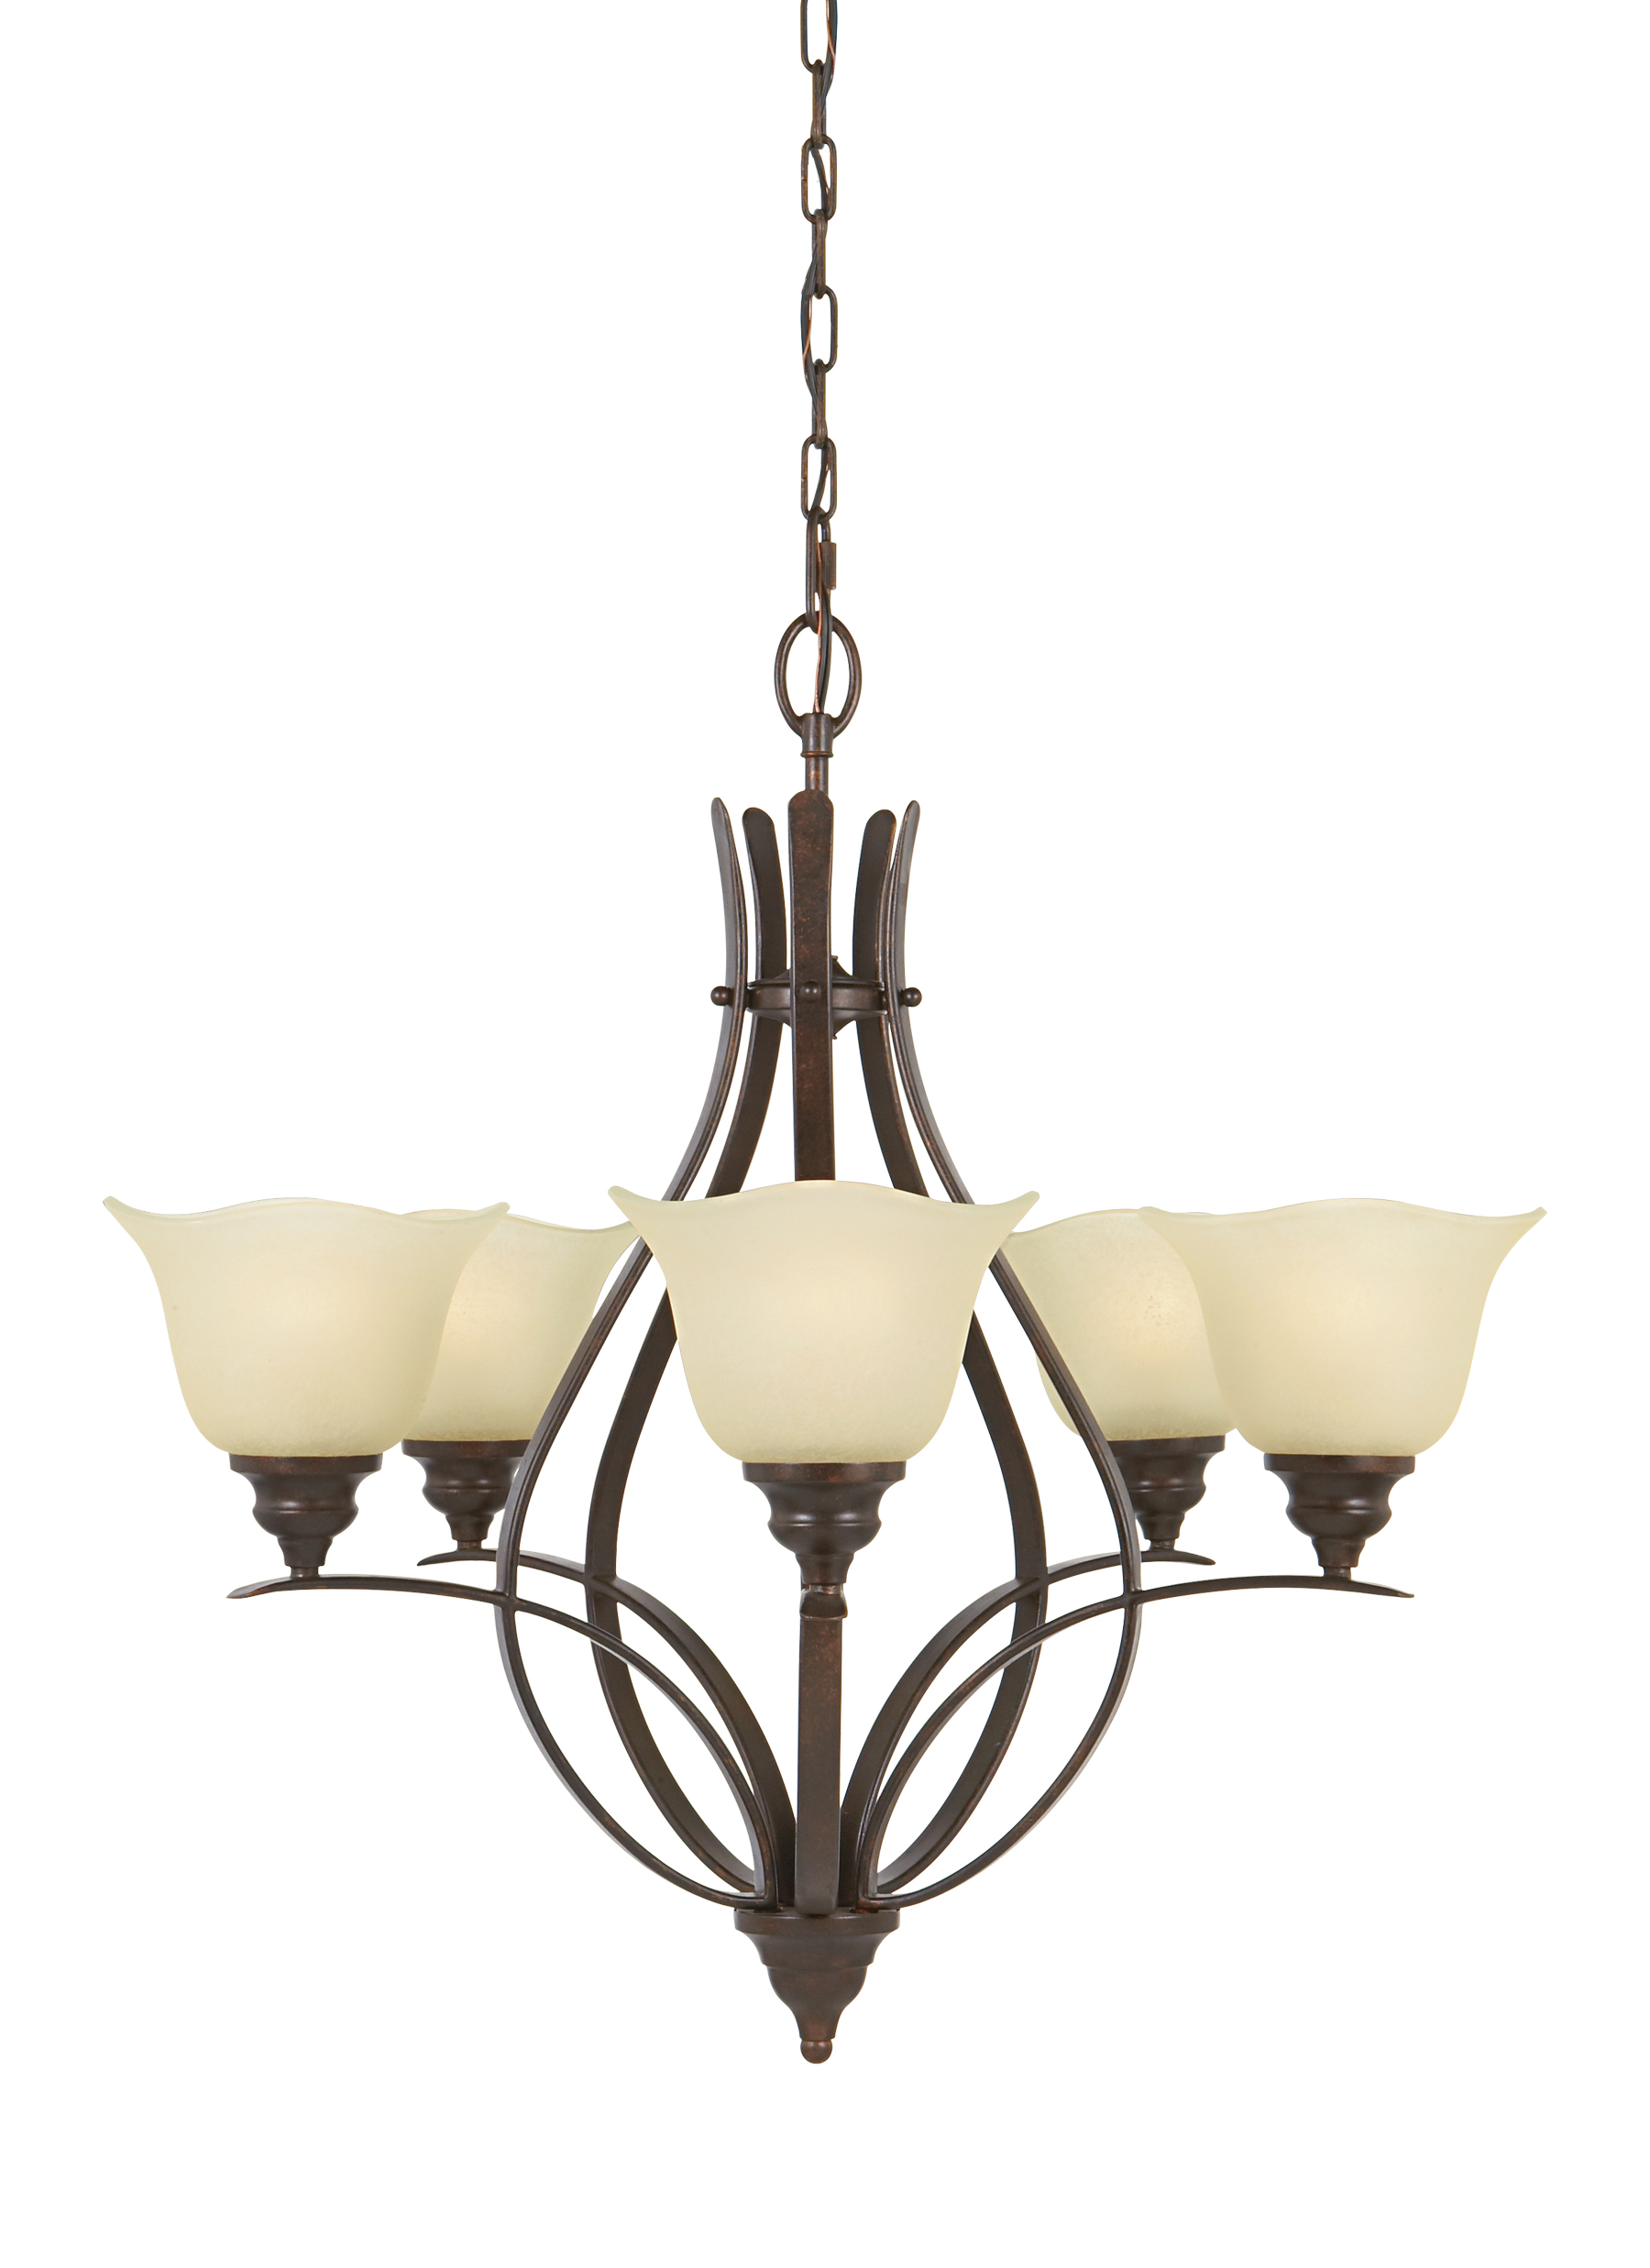 F20555gbz5 light single tier chandeliergrecian bronze loading zoom arubaitofo Image collections